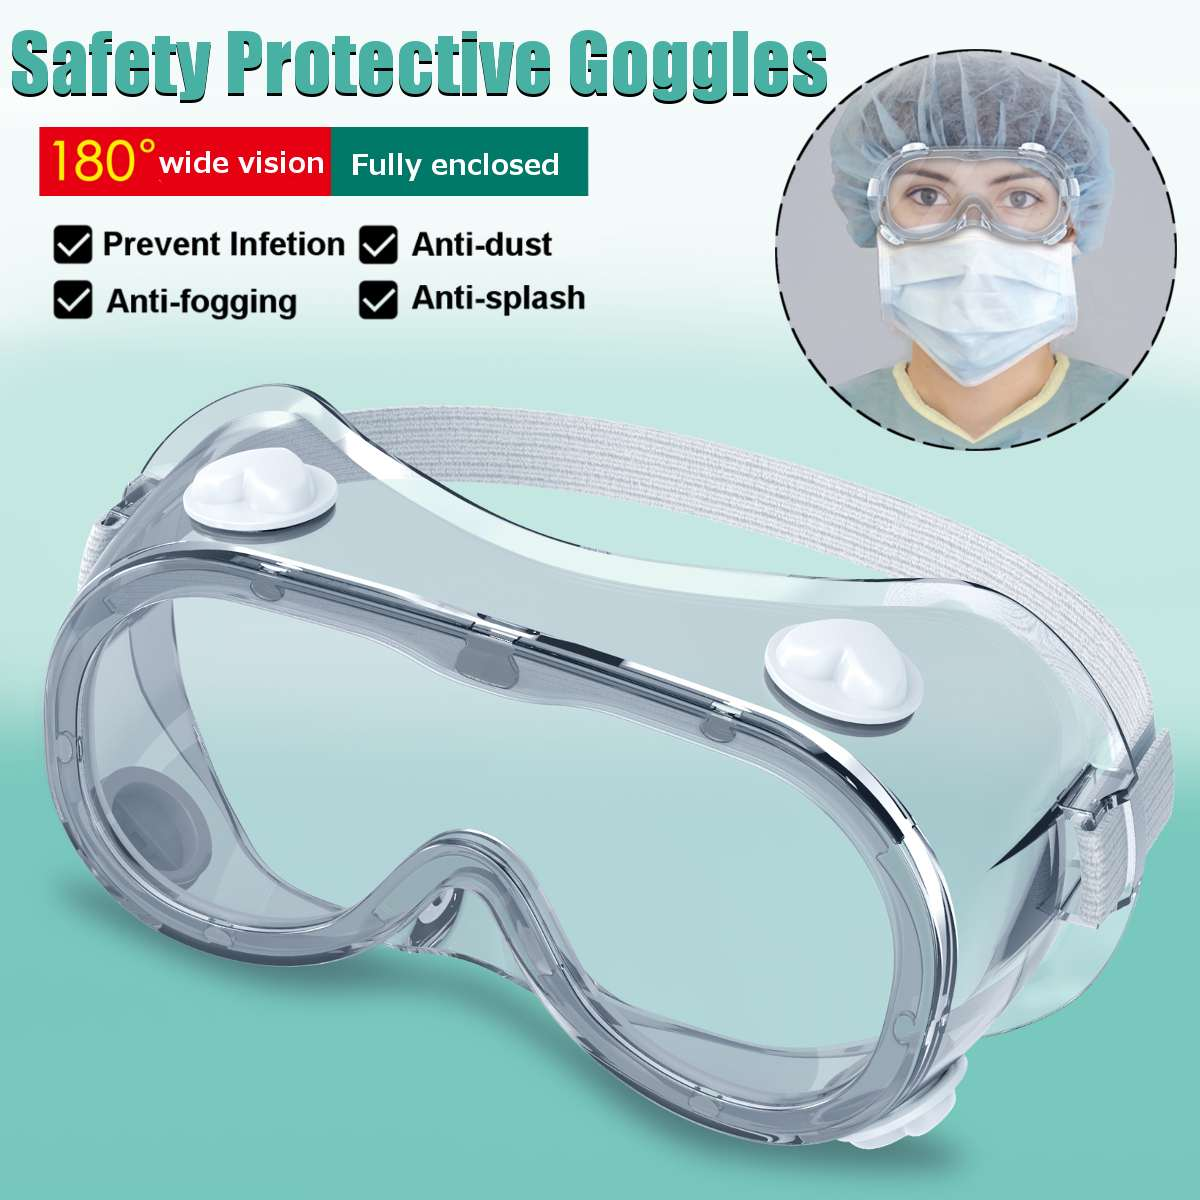 2 Type Protective Safety Goggles Wide Vision Disposable Indirect Vent Prevent Infection Eye Mask Anti-Fog Medical Splash Goggles